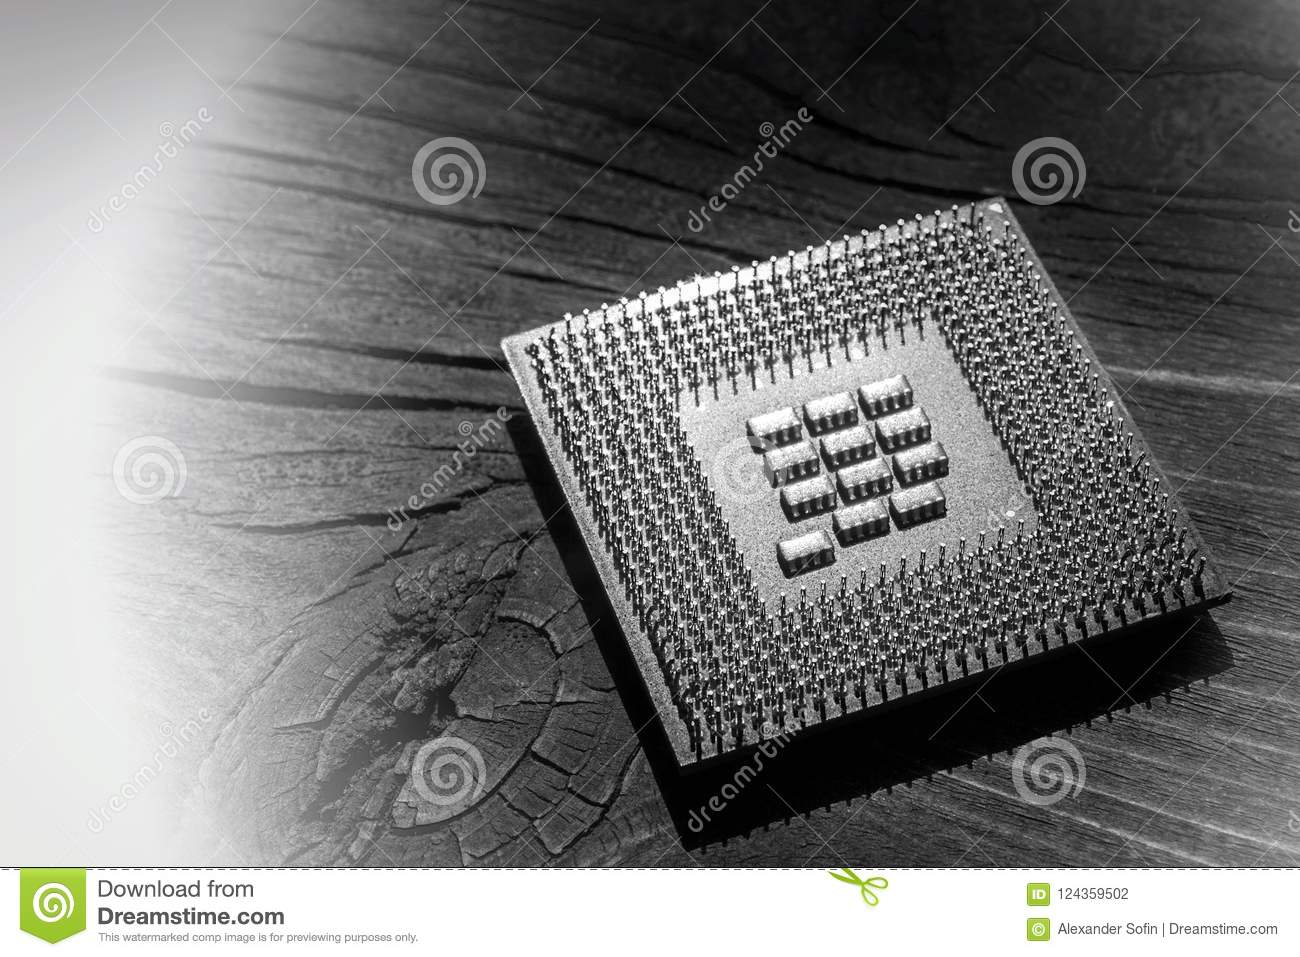 Microprocessor lying on an old cracked board with a knot